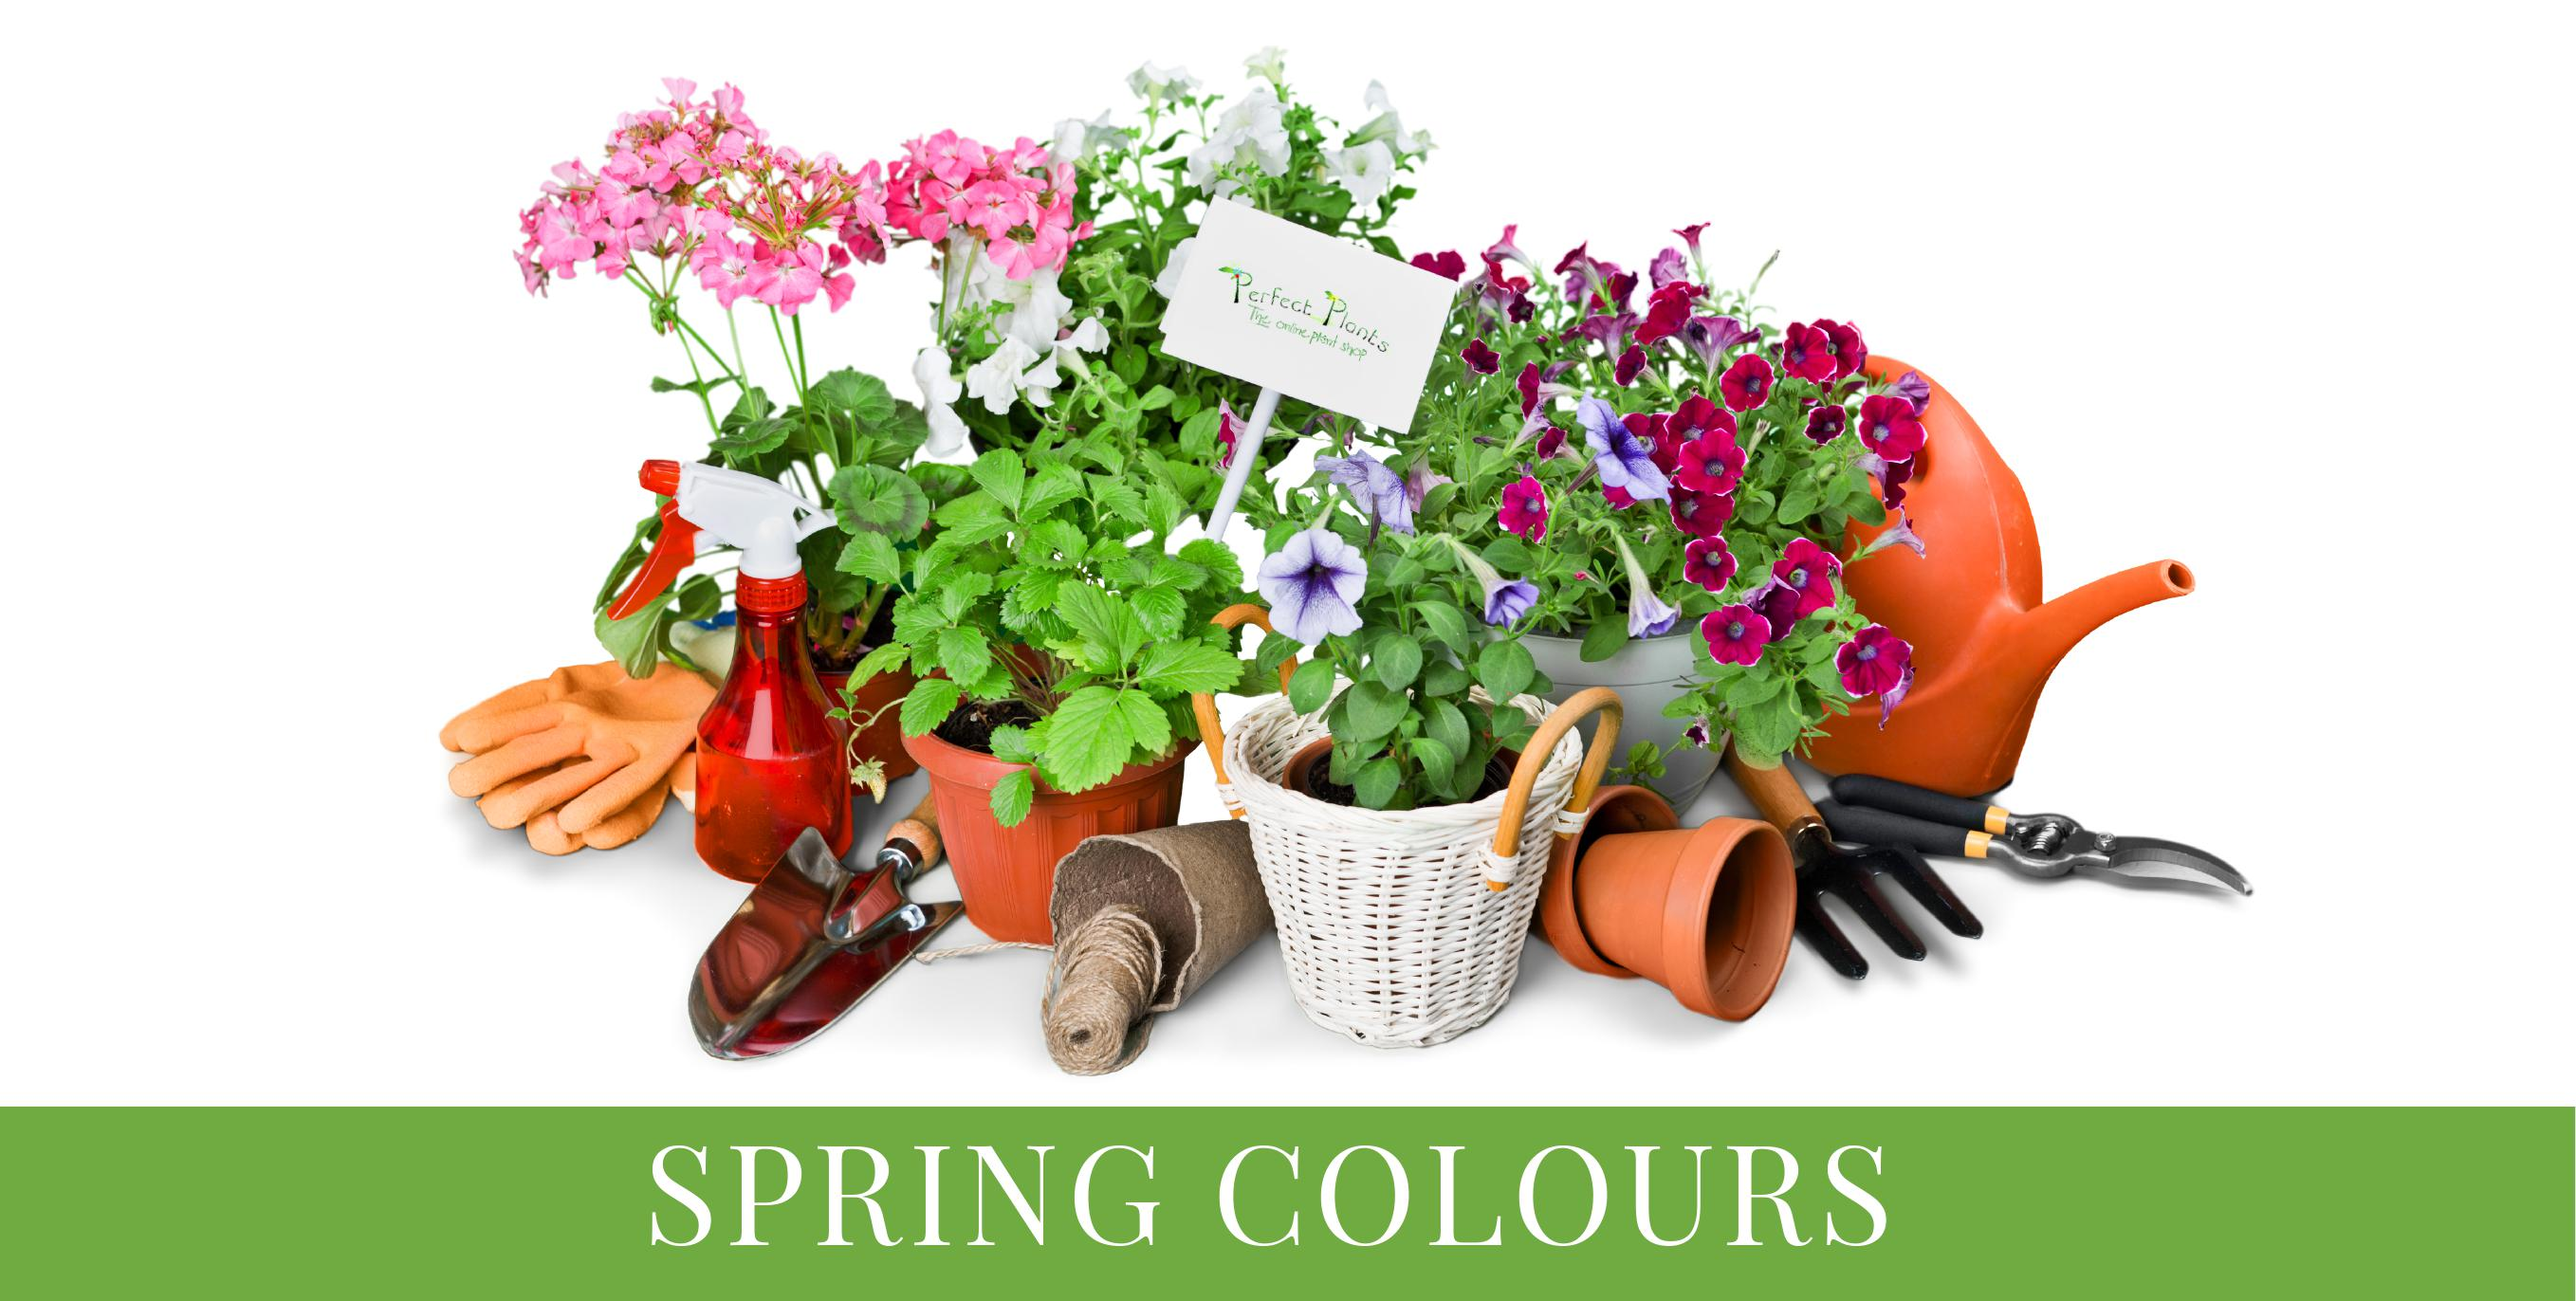 Spring colours Bright and colourful selection of potted flowers and garden tools